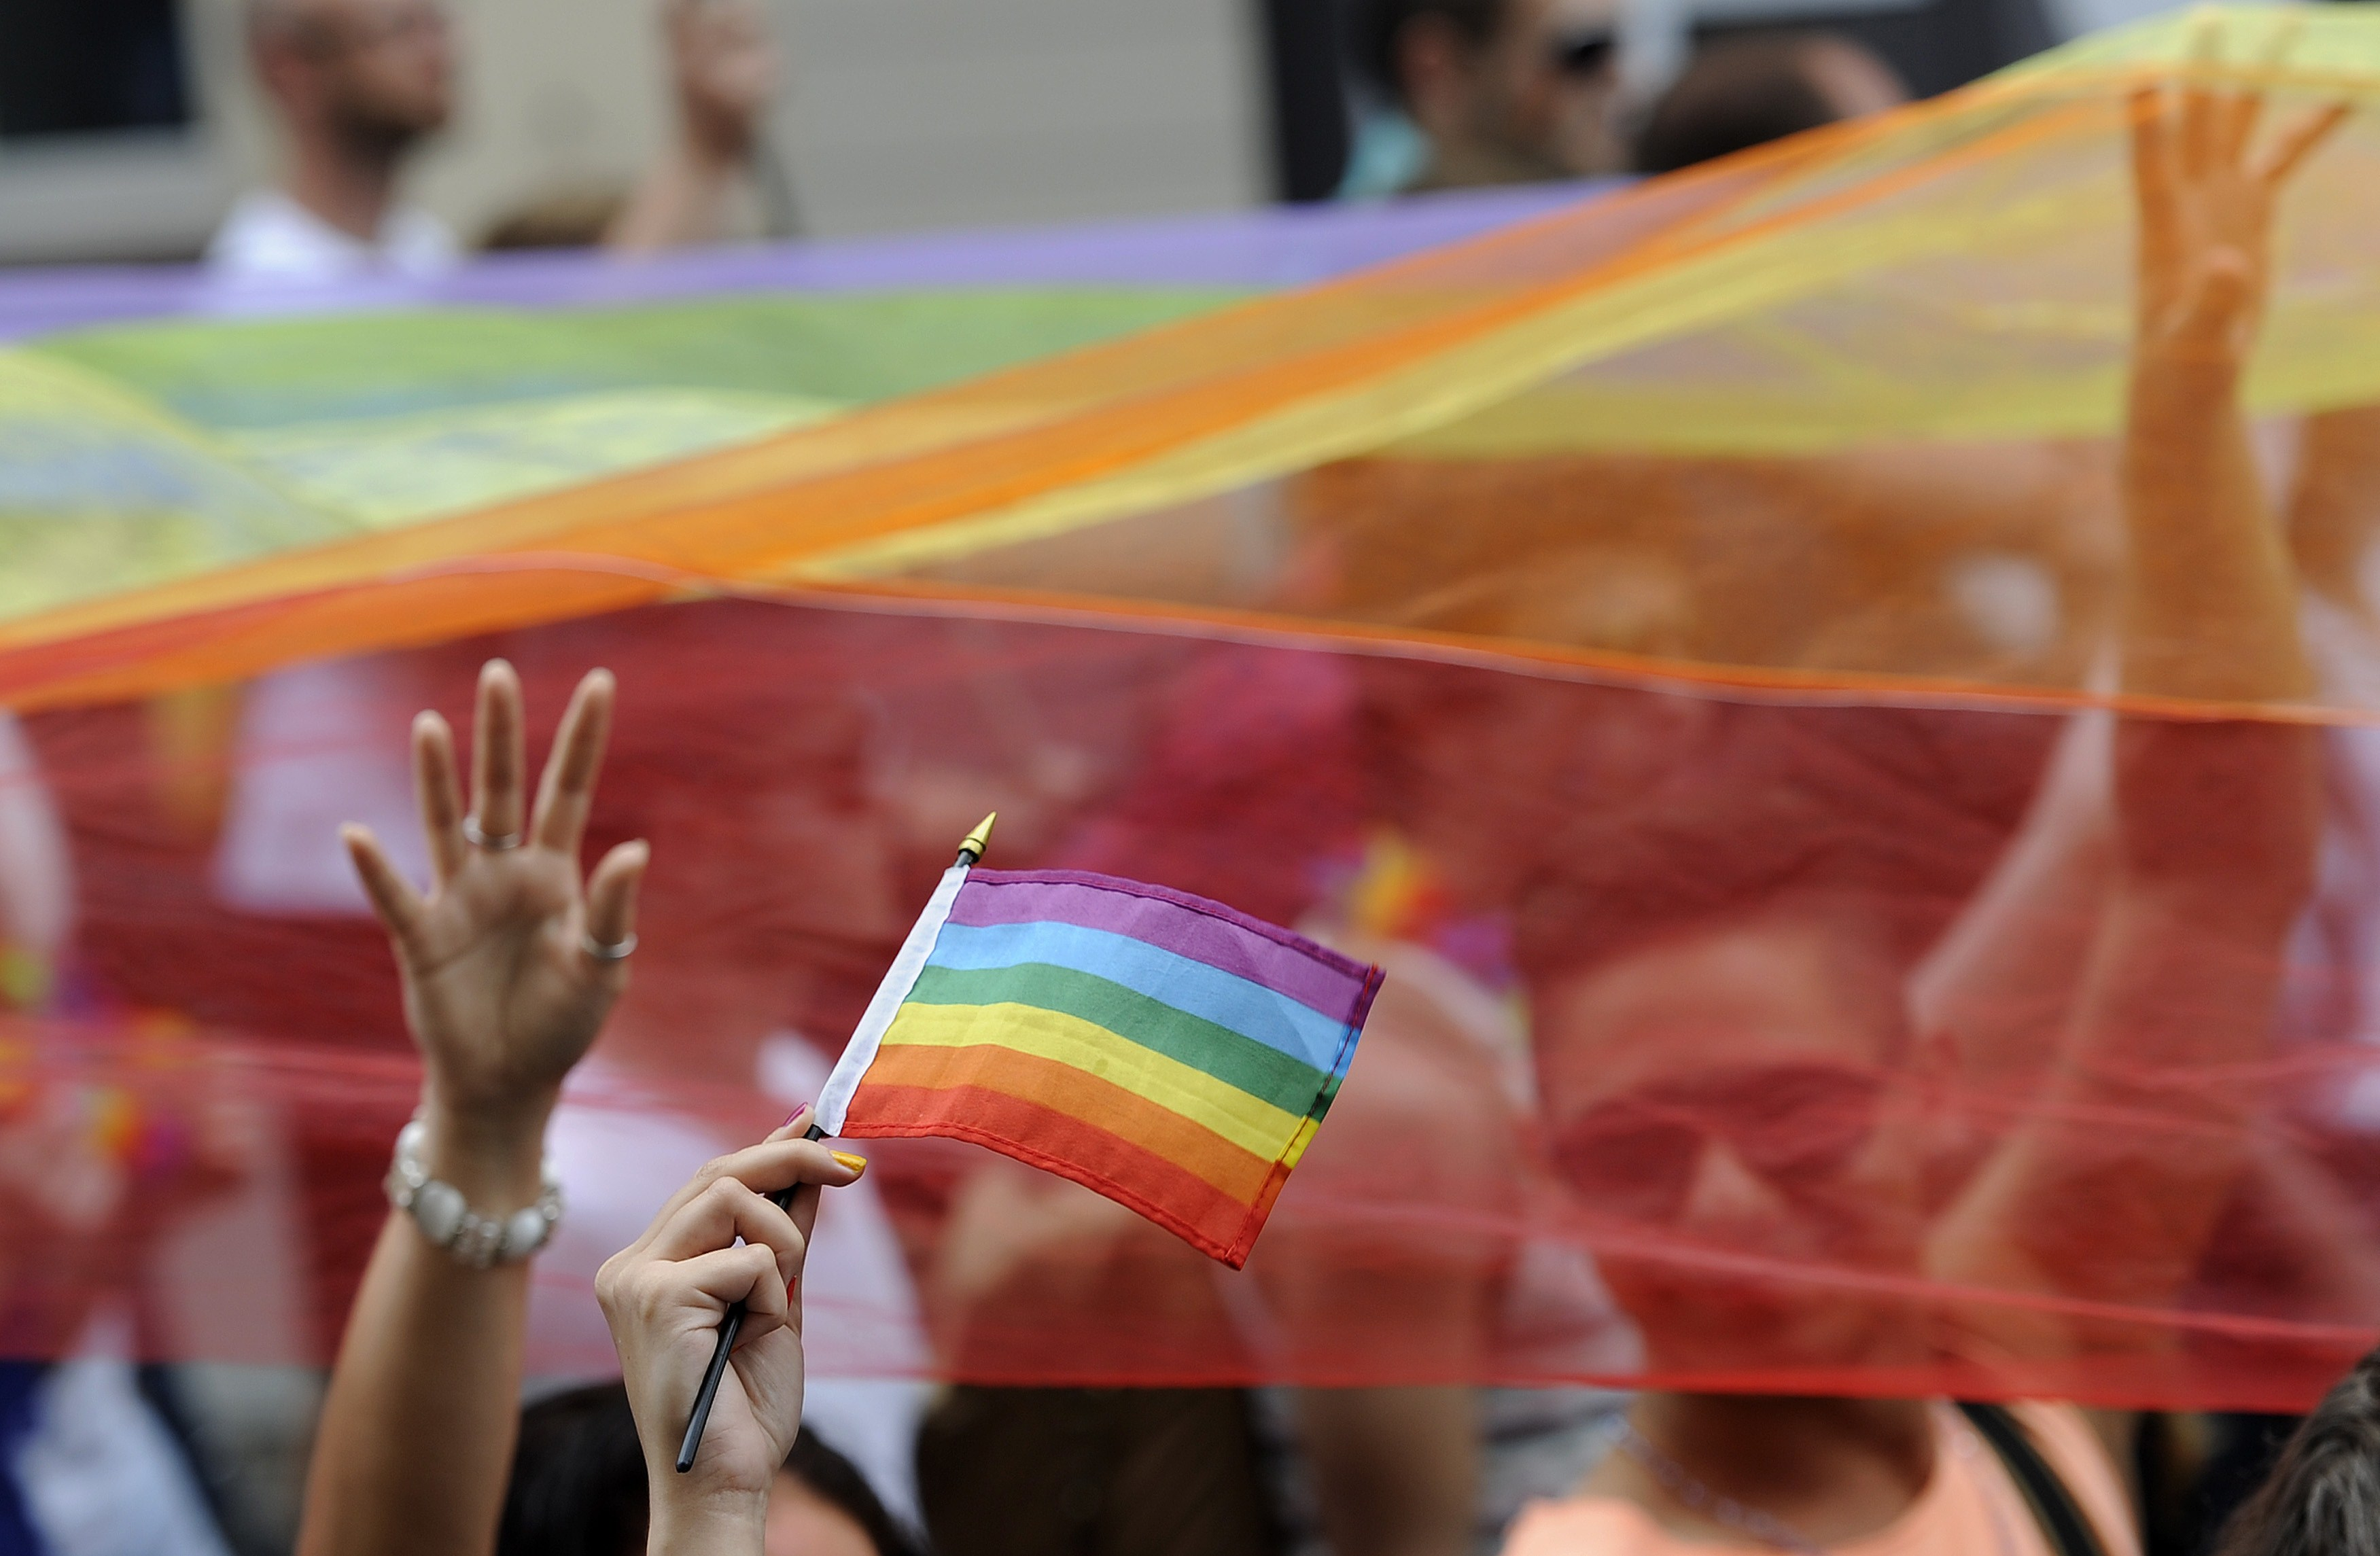 People demonstrate with rainbow flags during the lesbian, gay, bisexual and transgender (LGBT) Rainbow Pride Parade in Bratislava, Slovakia on June 28, 2014.